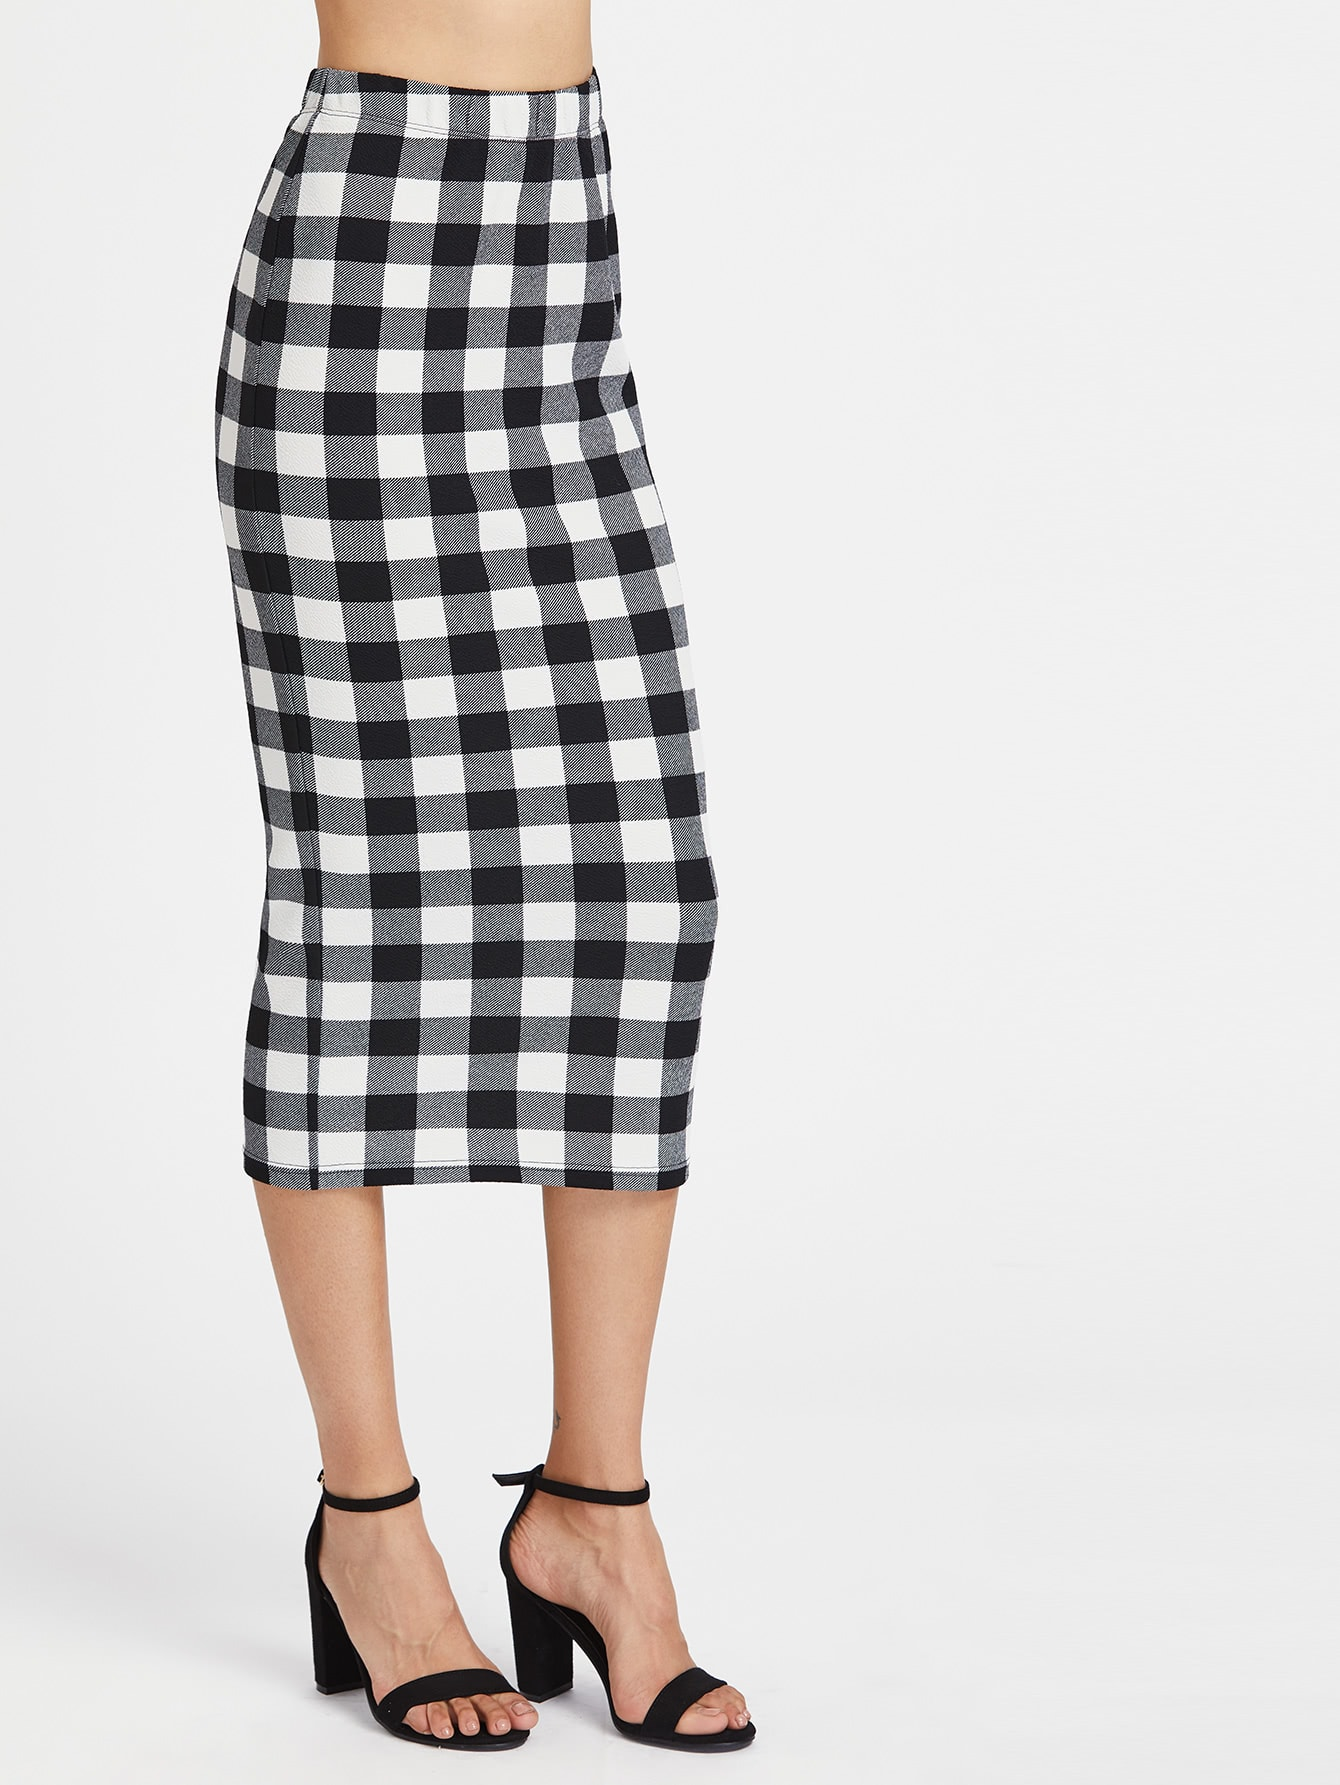 Elasticized Waist Checkered Midi Pencil Skirt elasticized waist swing skirt